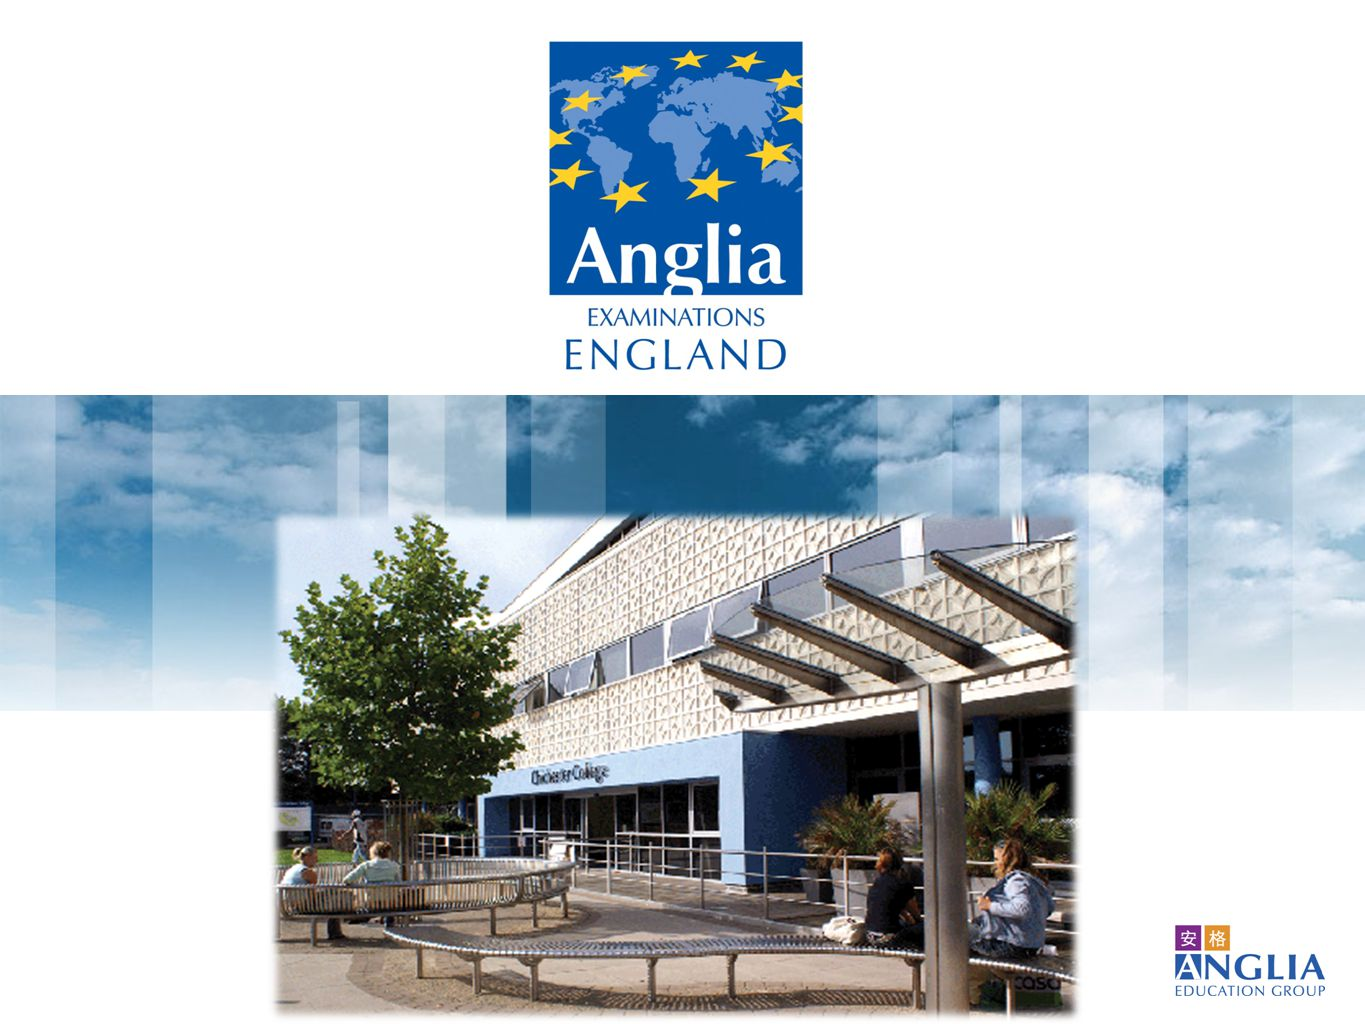 Ascentis Anglia ESOL International Examinations 可取得專為 Anglia 國際英檢綱要內容設計的學習資源 English learning resources especially aligned to Anglia's syllabus available 國內外承認並正式與 CEFR ( 歐洲語言學習、教學、評量共同參考架構 ) 對應 Internationally and locally recognized and officially aligned to the CEFR Anglia 國際英檢在全球四十二個國家有超過有十八年的經驗 Over 18 years experience, in 42 countries Anglia's Advantage